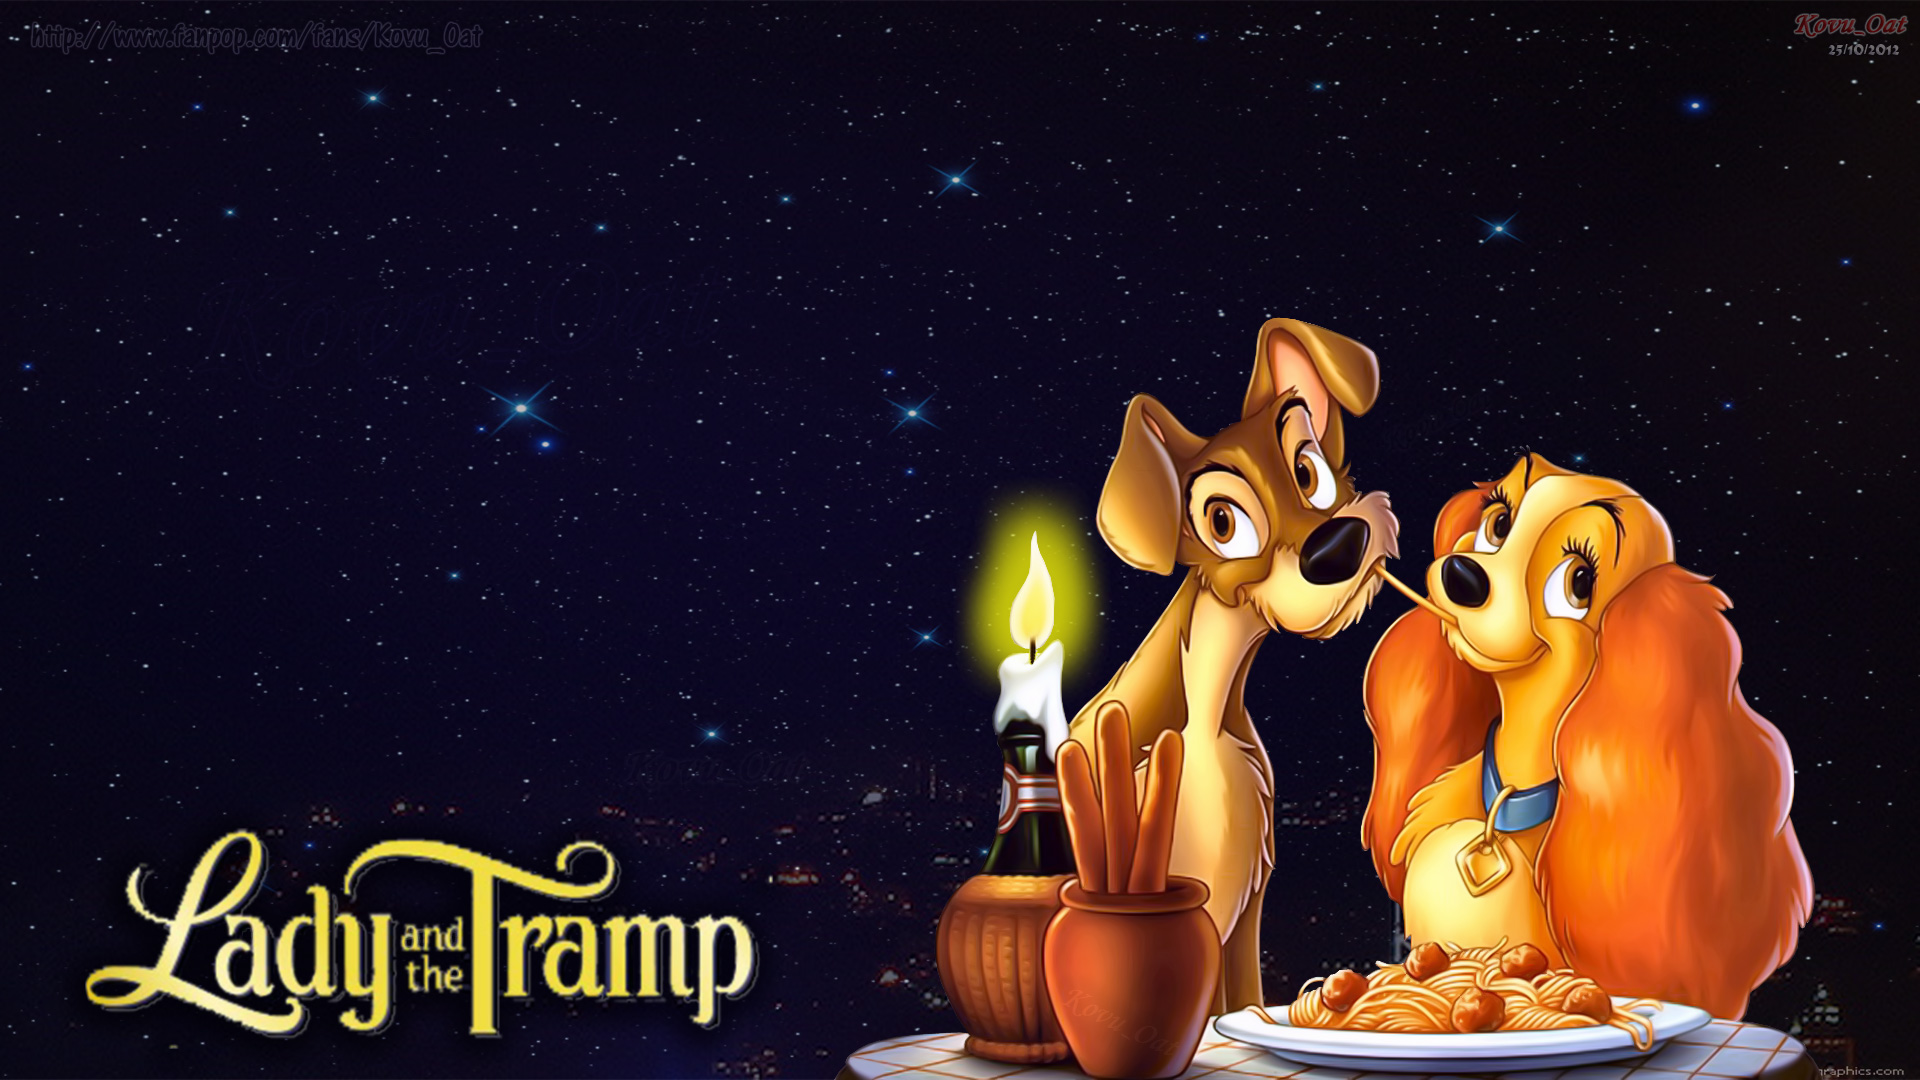 Kovu Oat Images Lady And Tramp Sweet Dinner Love Night Star Hd Hd